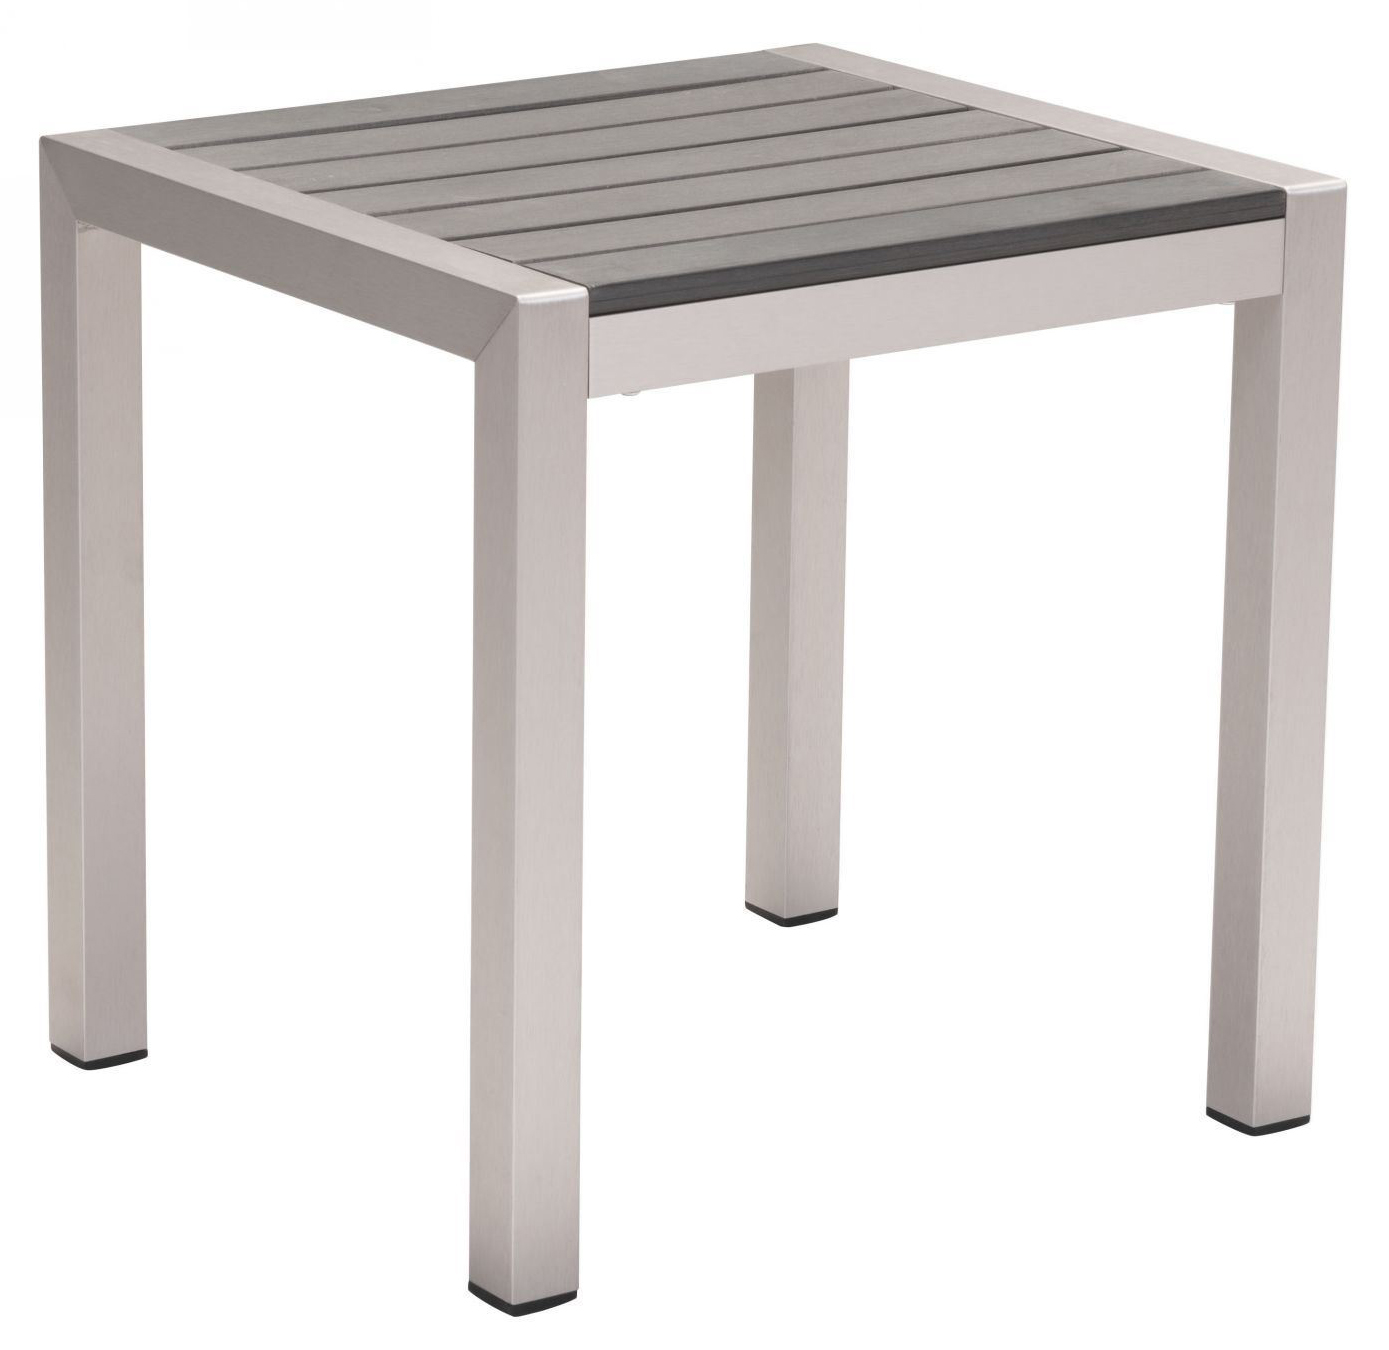 cosmopolitan side table b aluminum